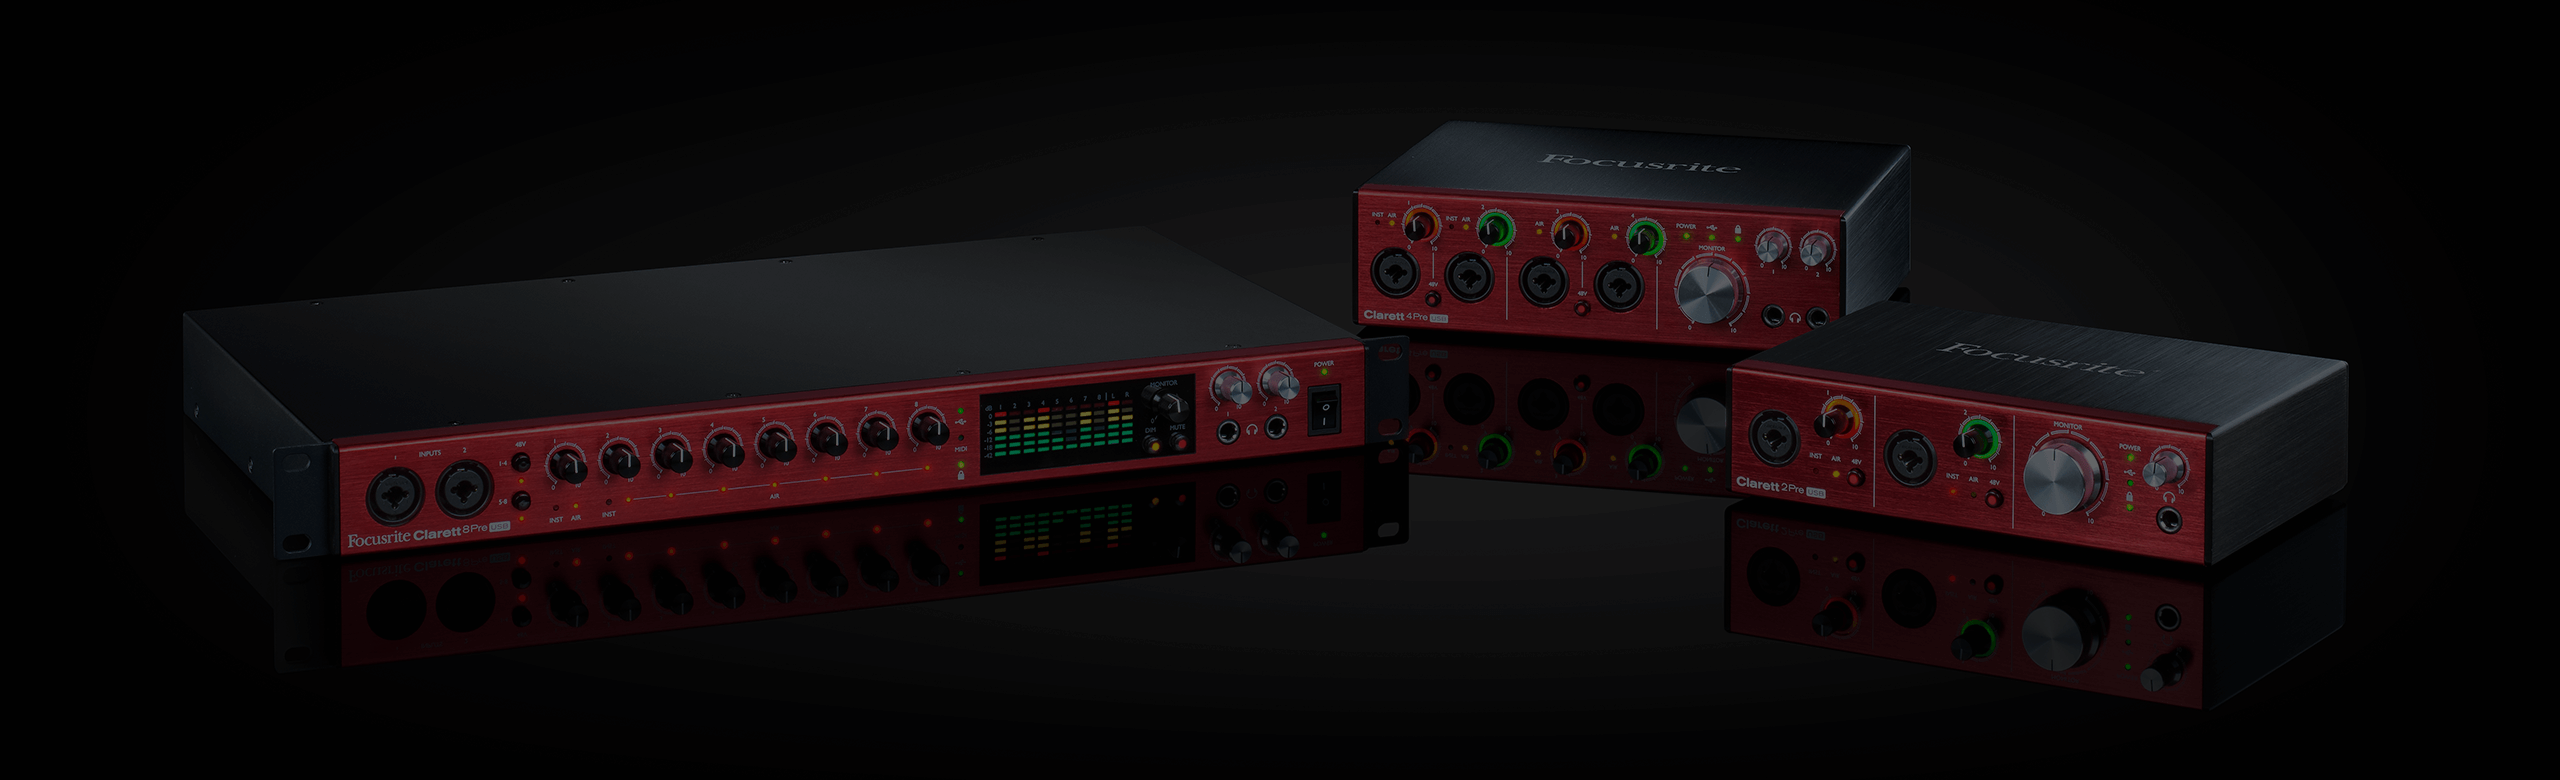 Shot of the Clarett USB range